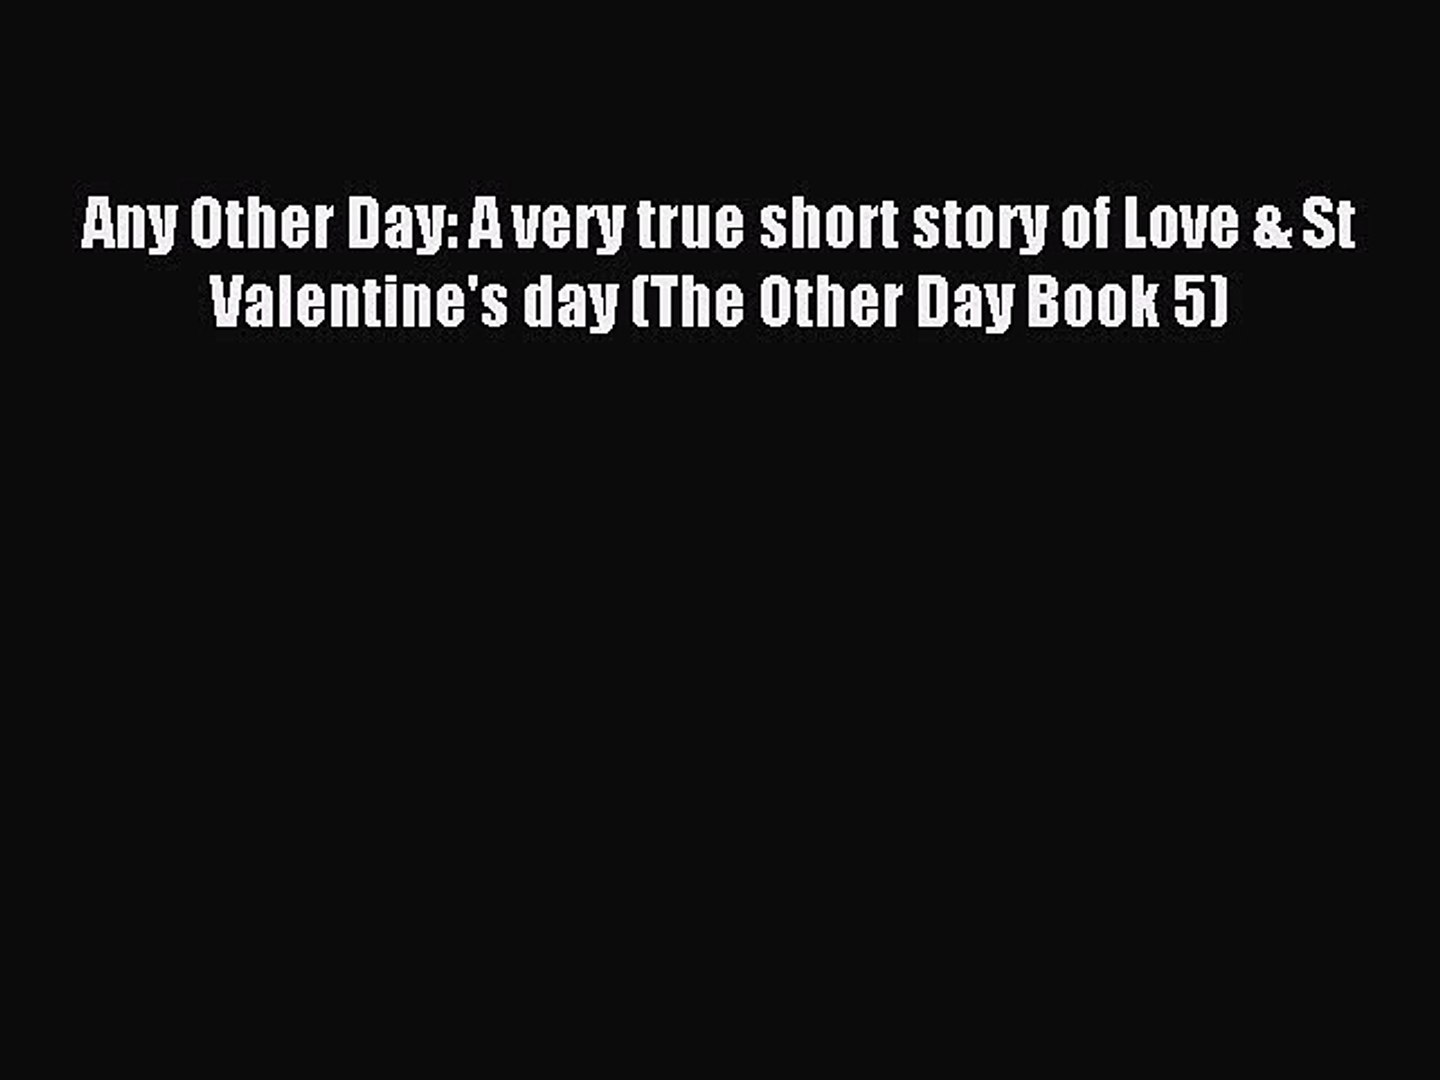 (PDF Download) Any Other Day: A very true short story of Love & St Valentine's day (The Oth